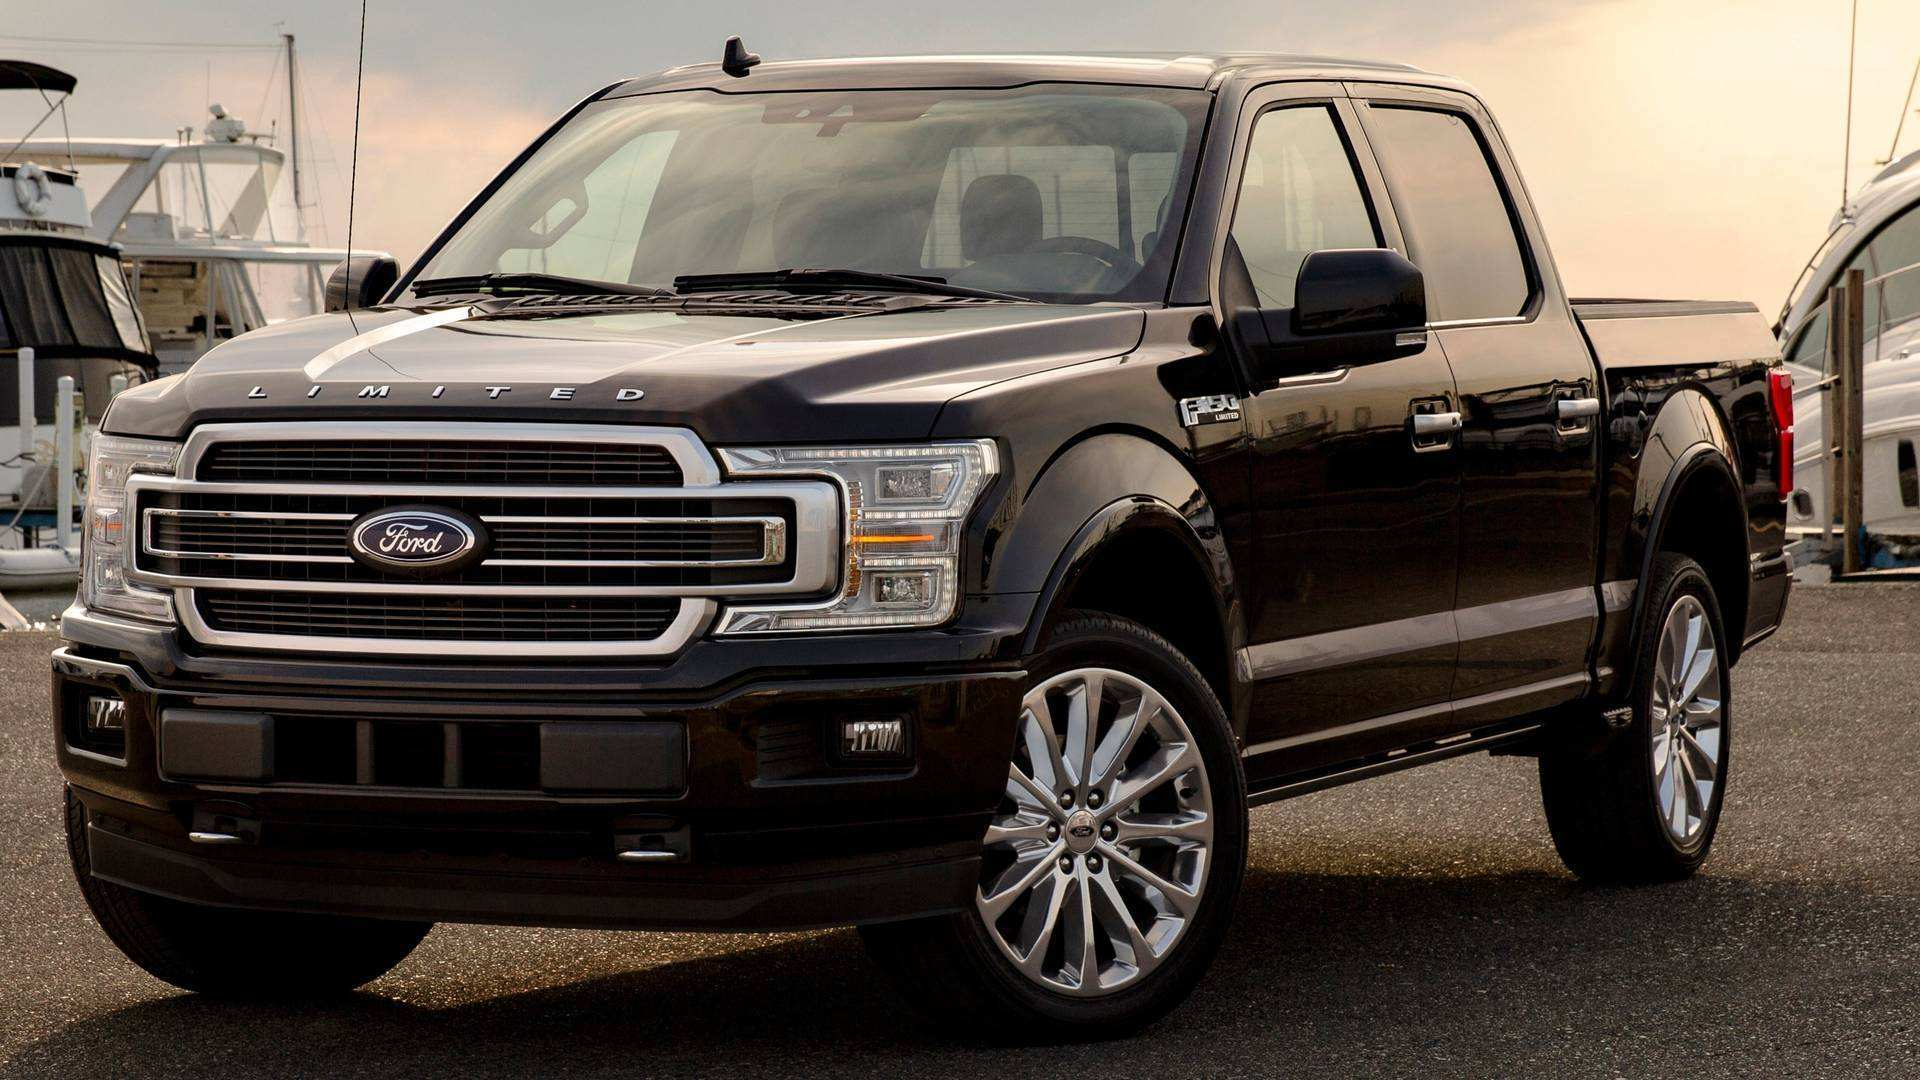 47 New 2019 Ford Lariat Price New Review with 2019 Ford Lariat Price